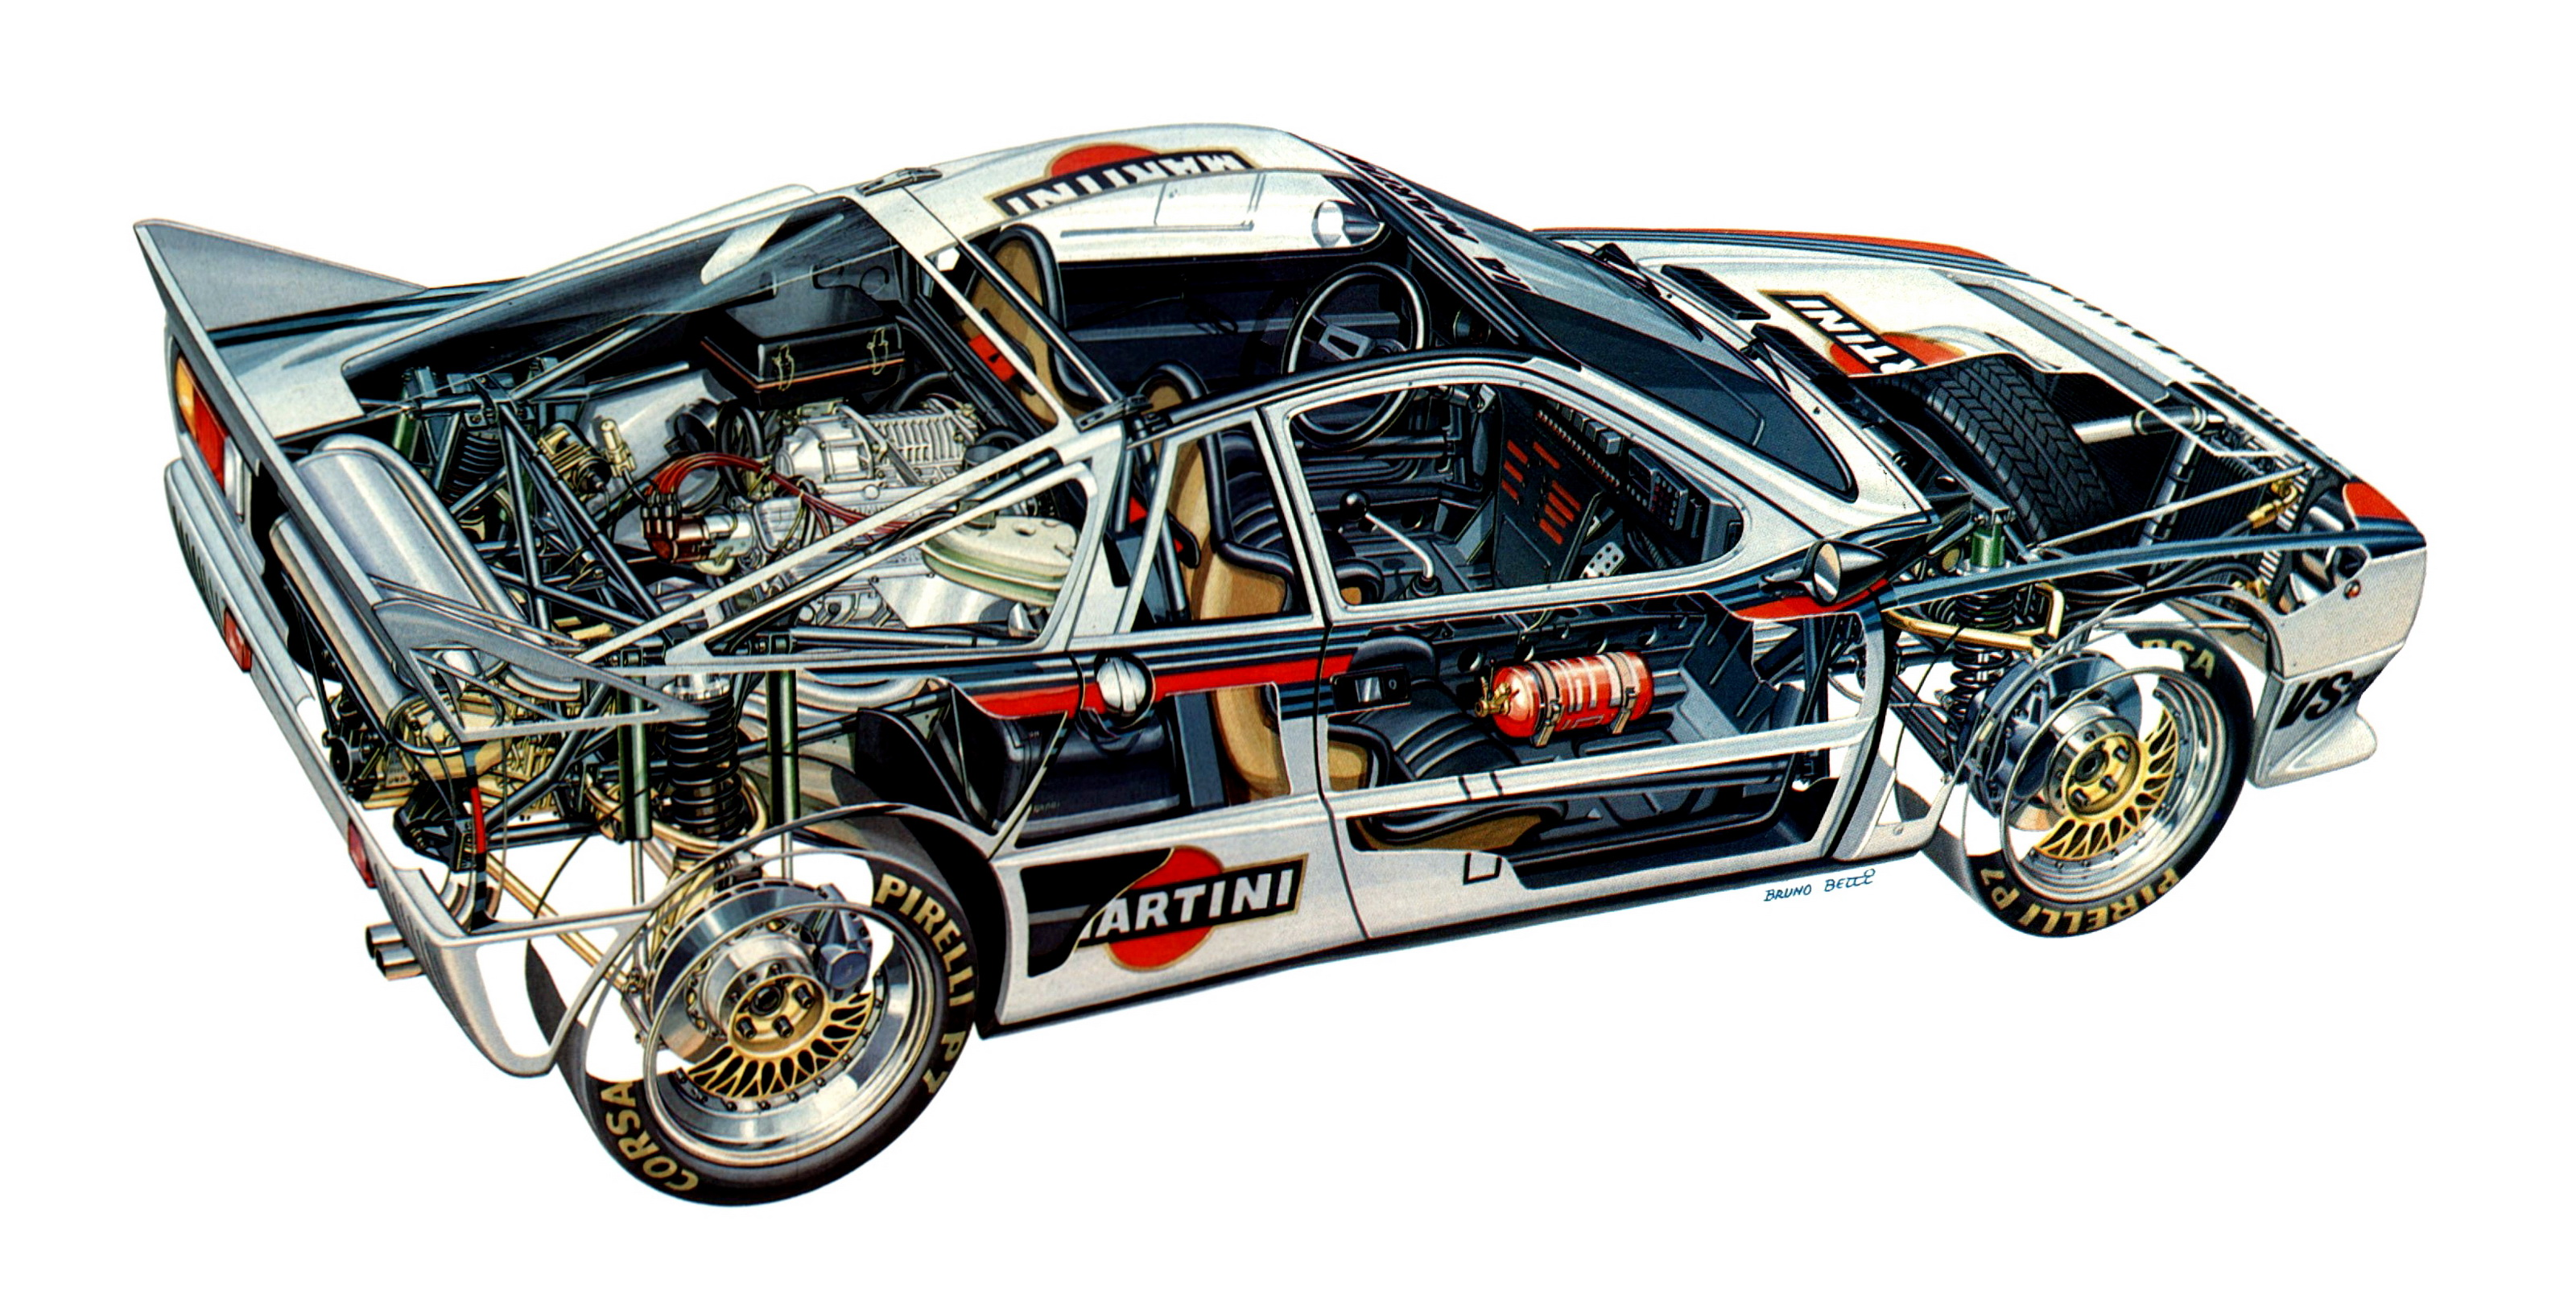 Free Wallpaper For Galaxy S4 Cars Dodge Under The Skin Lancia Cutaways Motorsport Retro